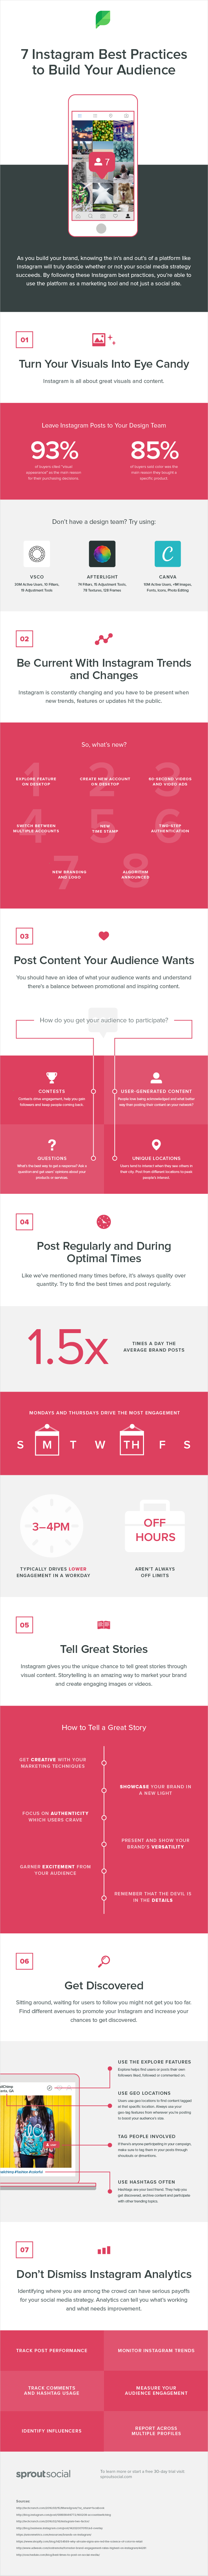 instagram best practices infographic